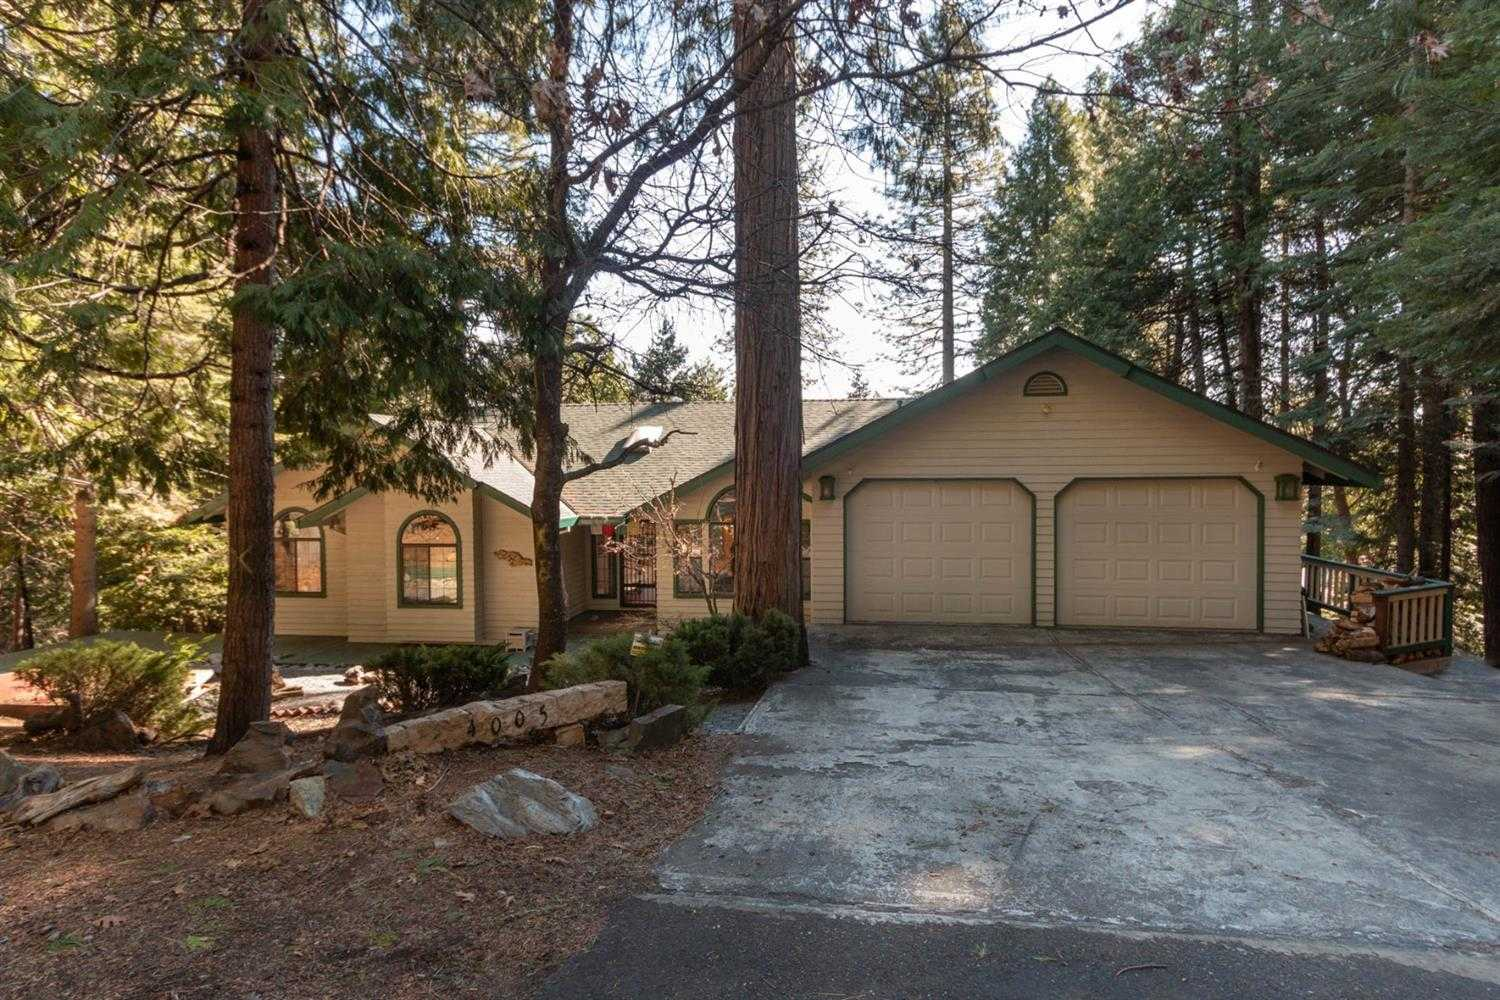 $369,000 - 3Br/2Ba -  for Sale in Pollock Pines